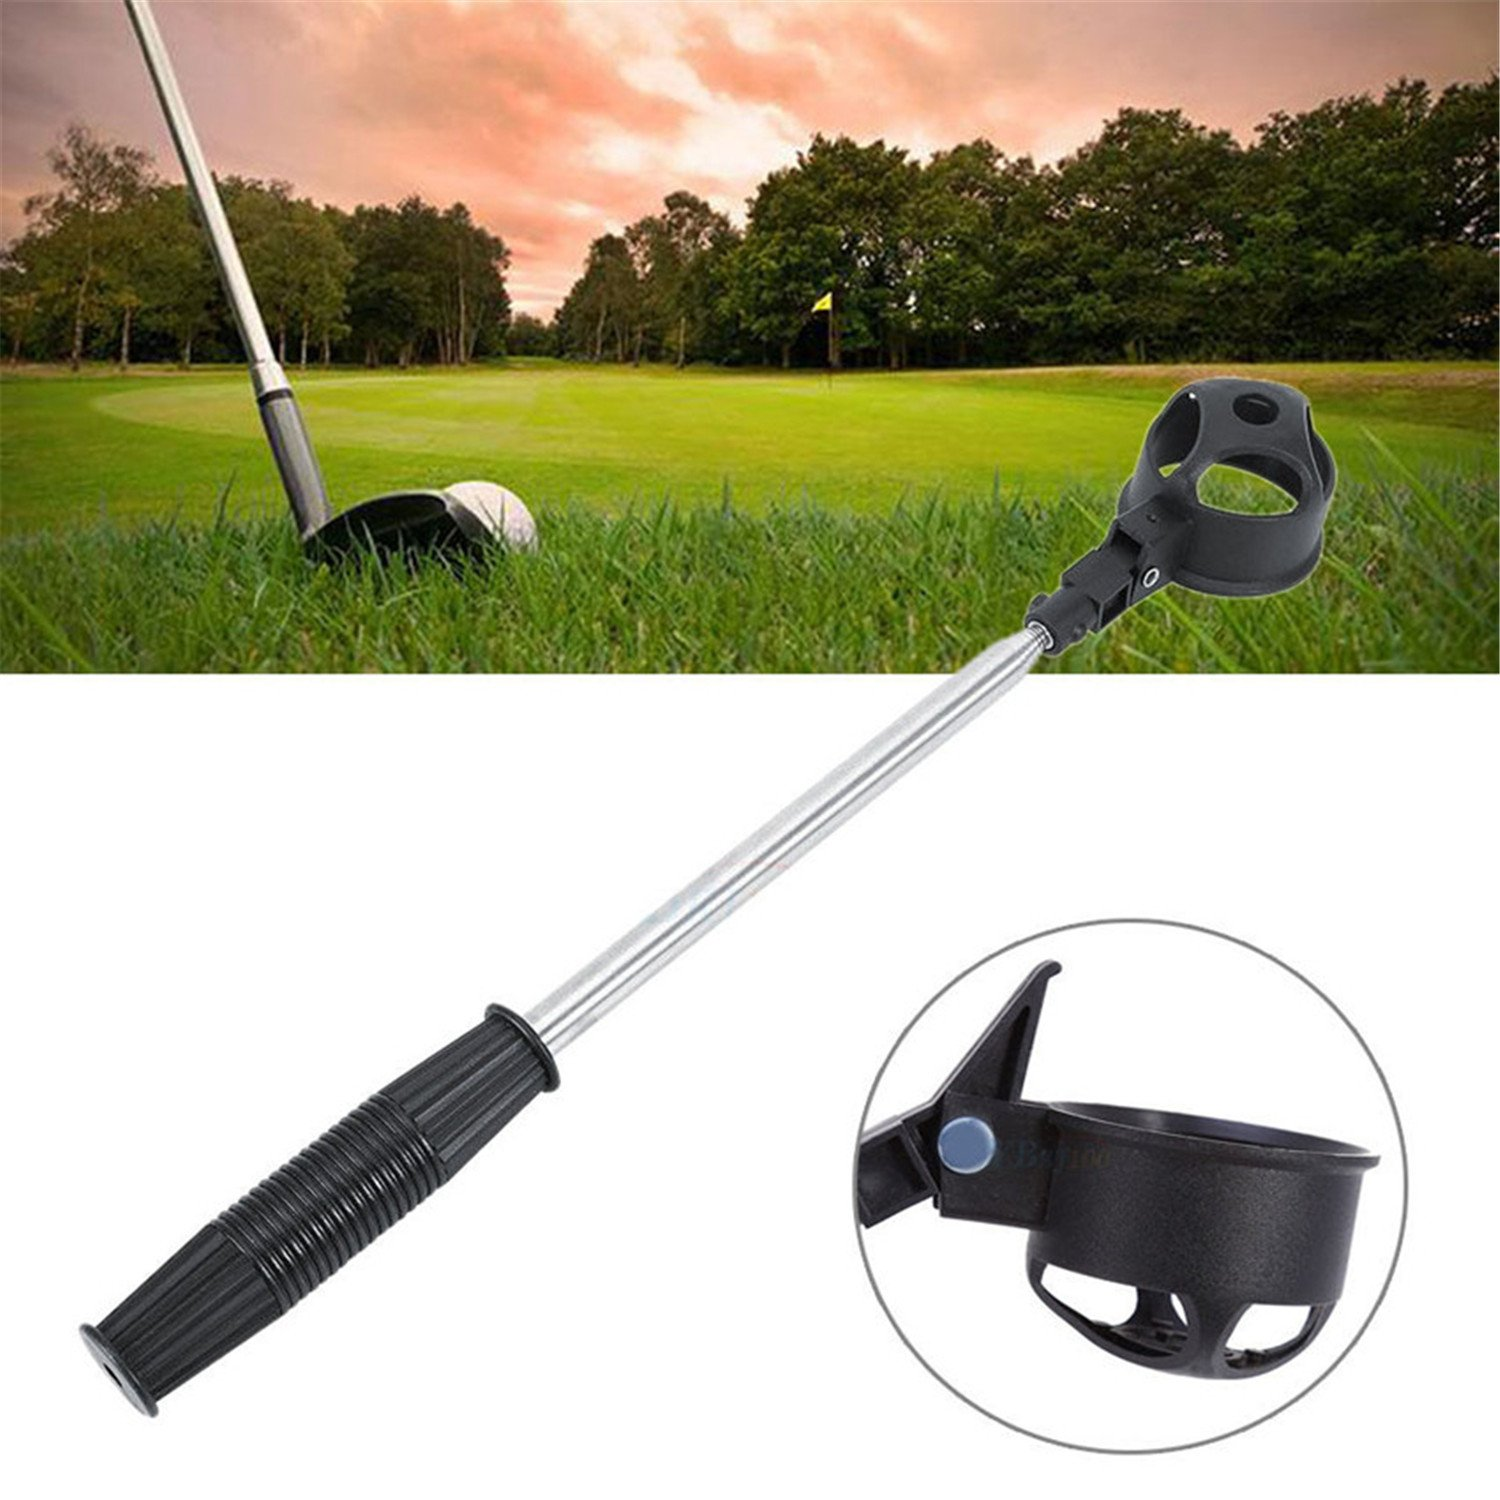 Finger Ten New Golf Ball Retractable Retriever 6.5 Foot/2 metre Telescopic Pick Up Scoop with a Free Golf Ball Wipe Towel Pack   B075FPYLWW